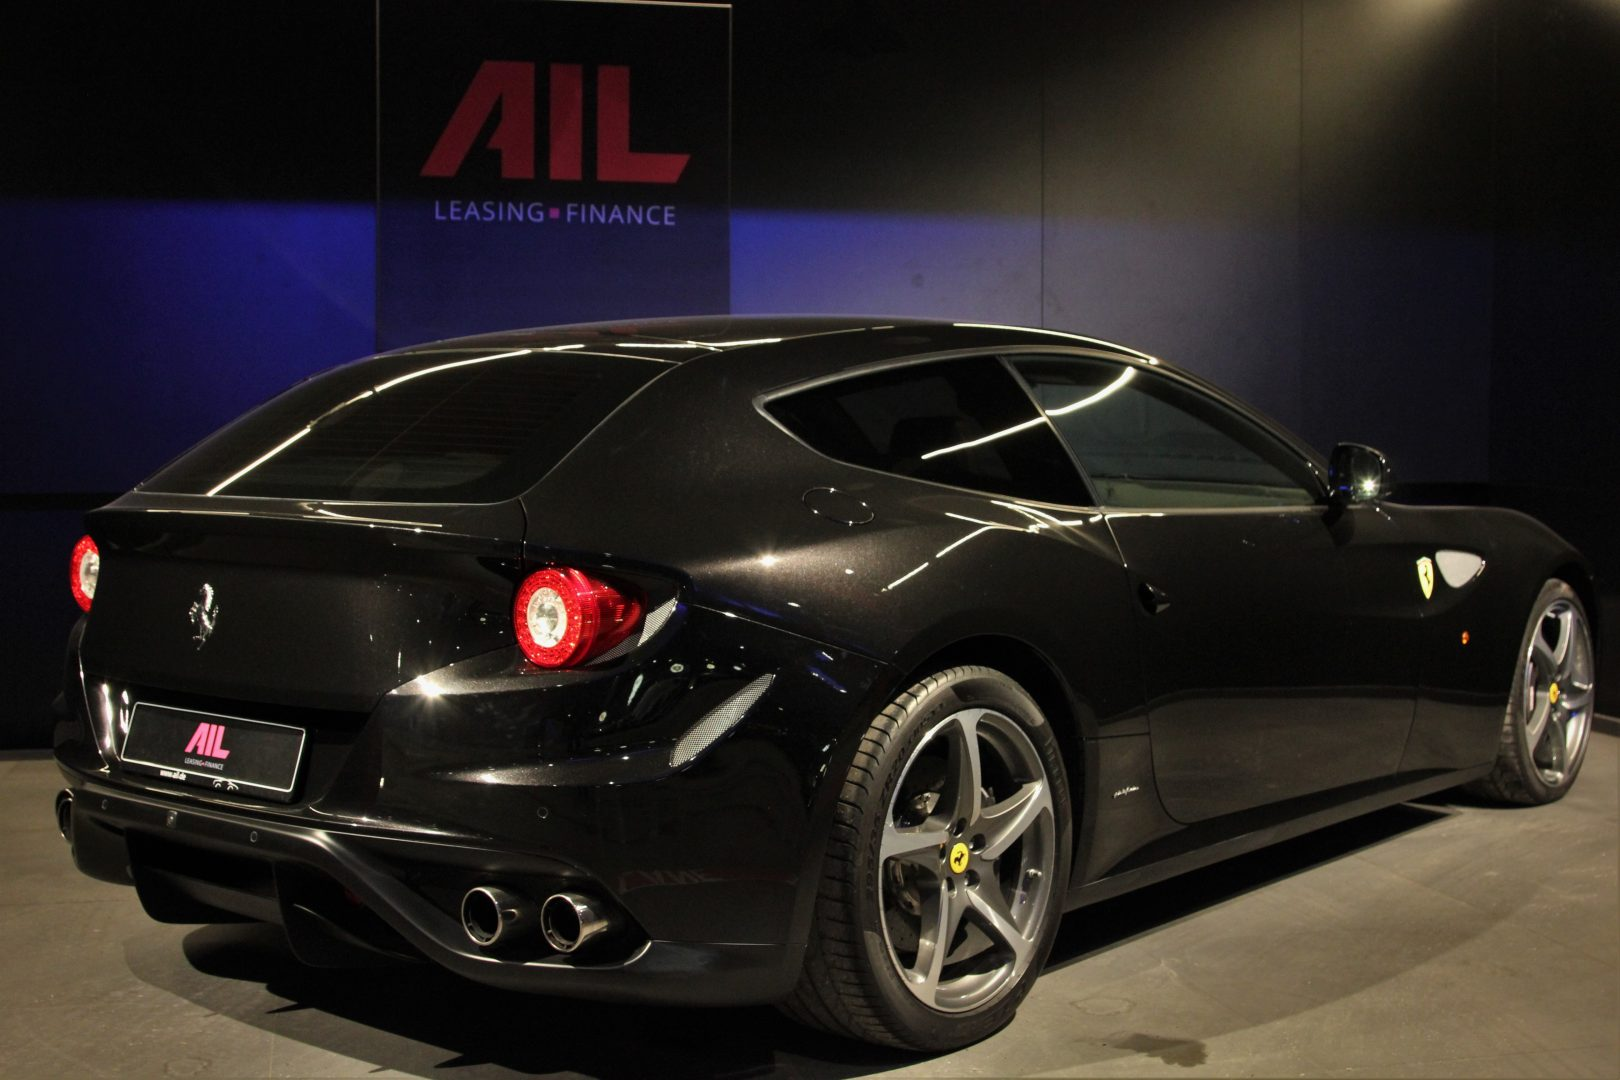 AIL Ferrari FF V12 Carbon Ceramic Brake 2